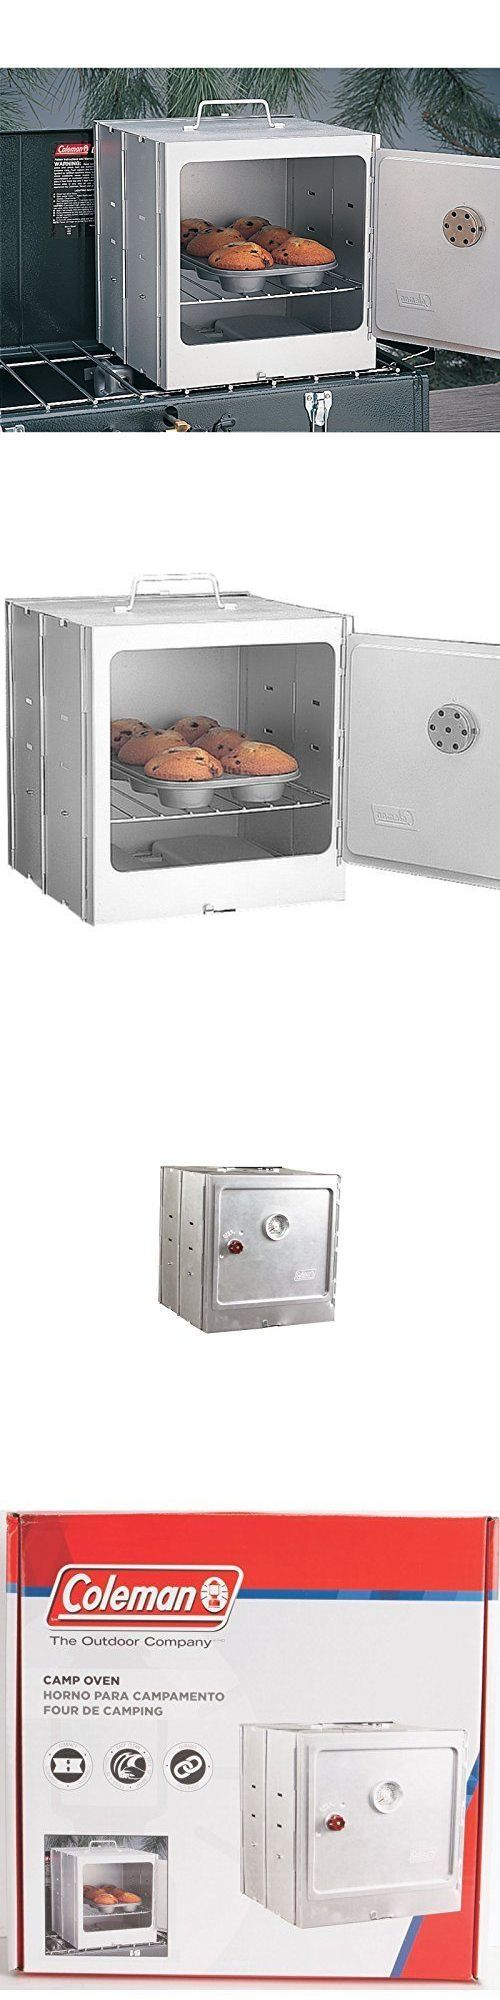 Camping Ovens 181387: Coleman Camp Baking Portable Oven Camping Stove Outdoor Folds Flat Campsite -> BUY IT NOW ONLY: $38.69 on eBay!